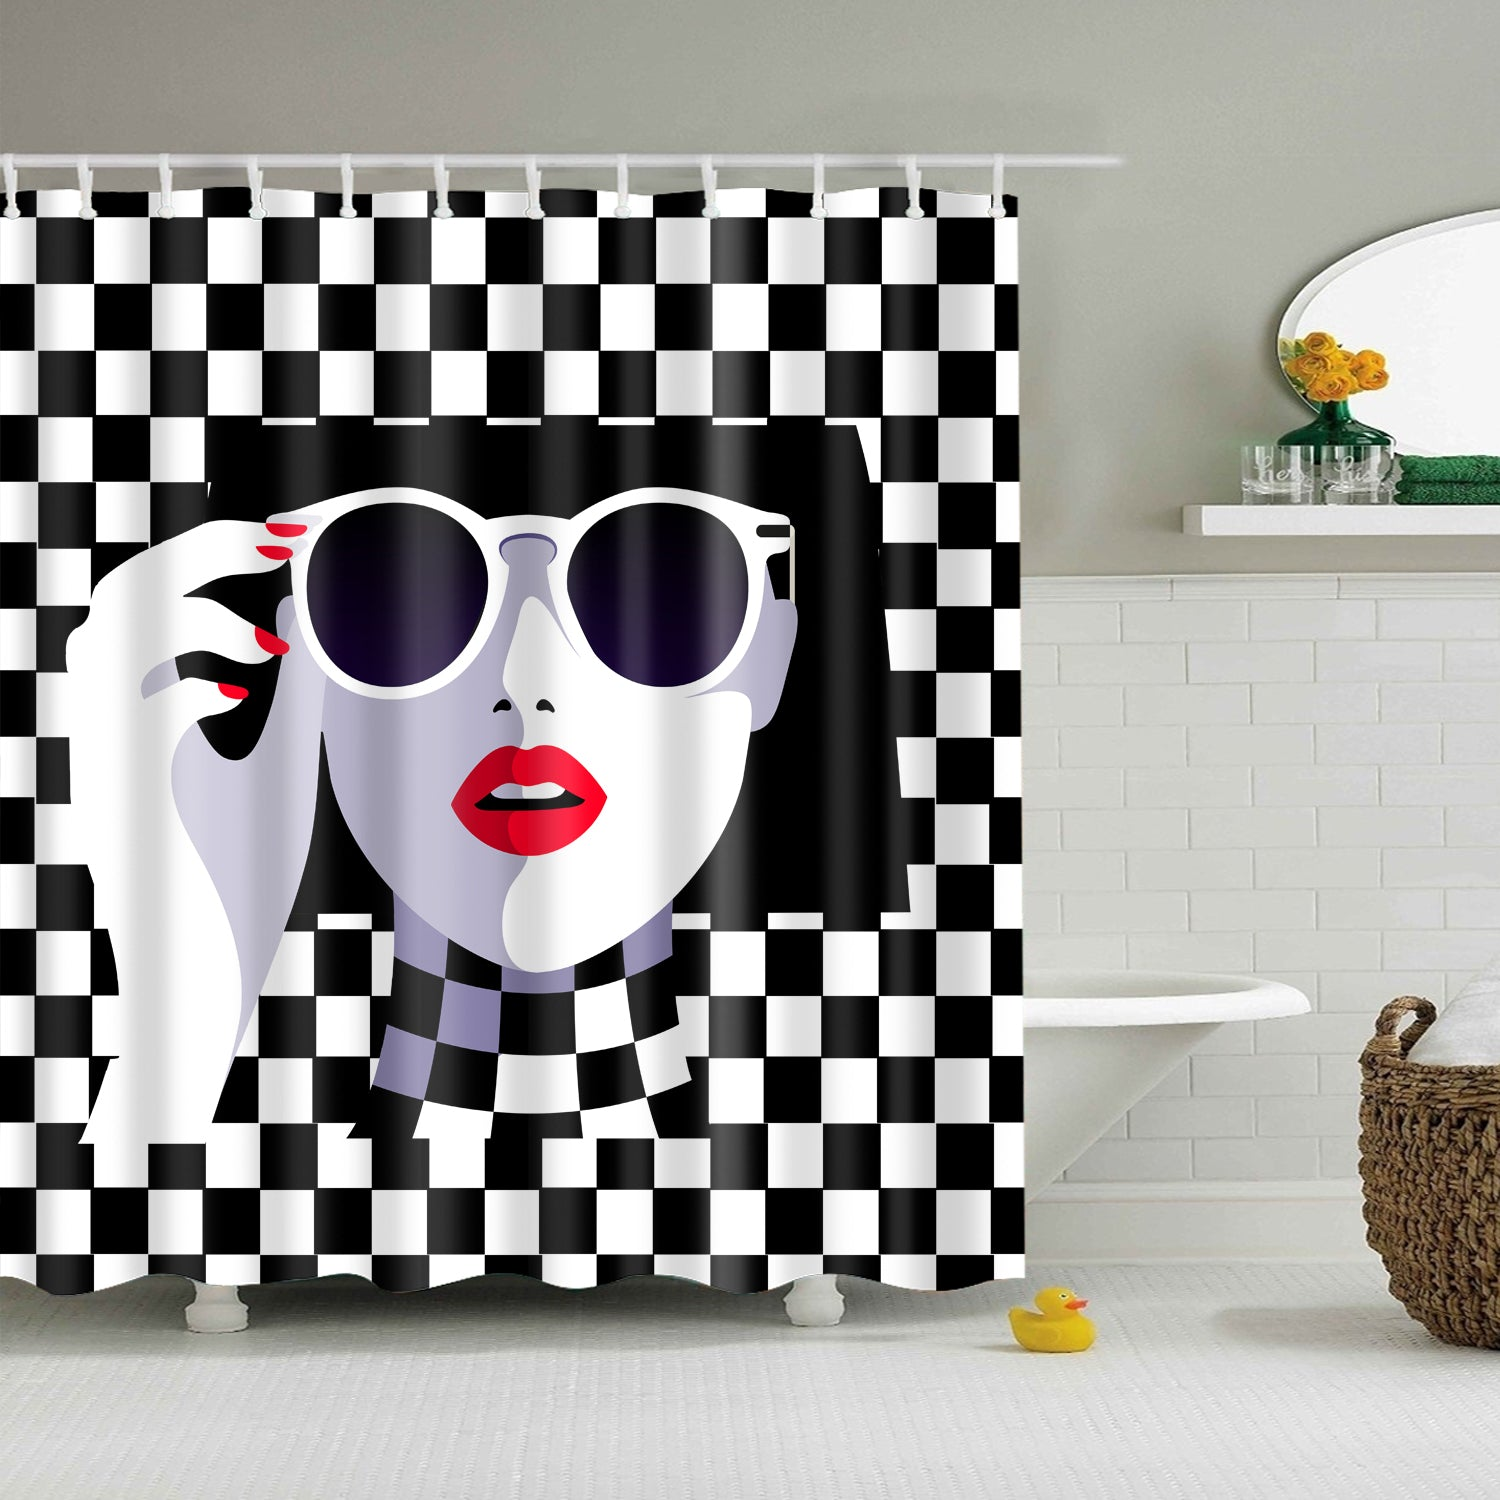 Malika Favre Fashion Girl Schermata Shower Curtain | GoJeek